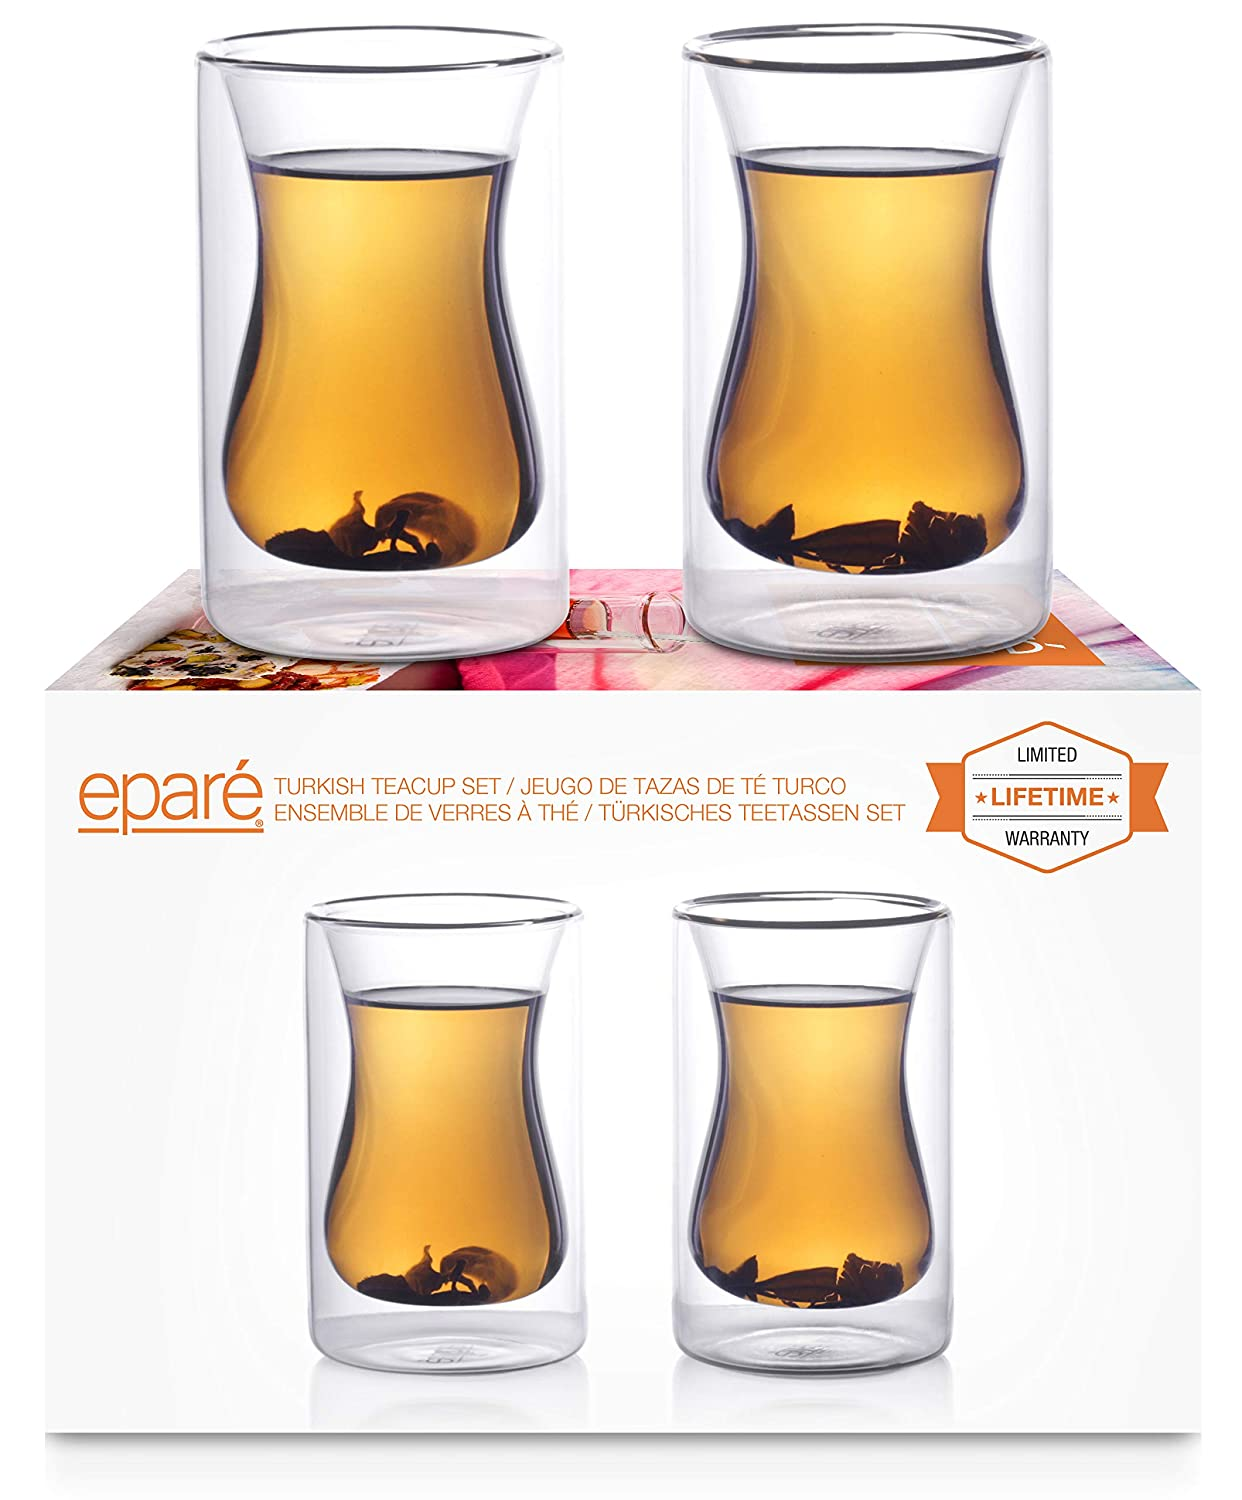 Eparé Insulated Glass Tea Cup Set (6 oz, 180 ml) -Double Wall Infuser Tumbler Cups – Mug for Drinking Turkish Coffee, Espresso, Matcha, Detox or Fit Chai – 2 Glasses